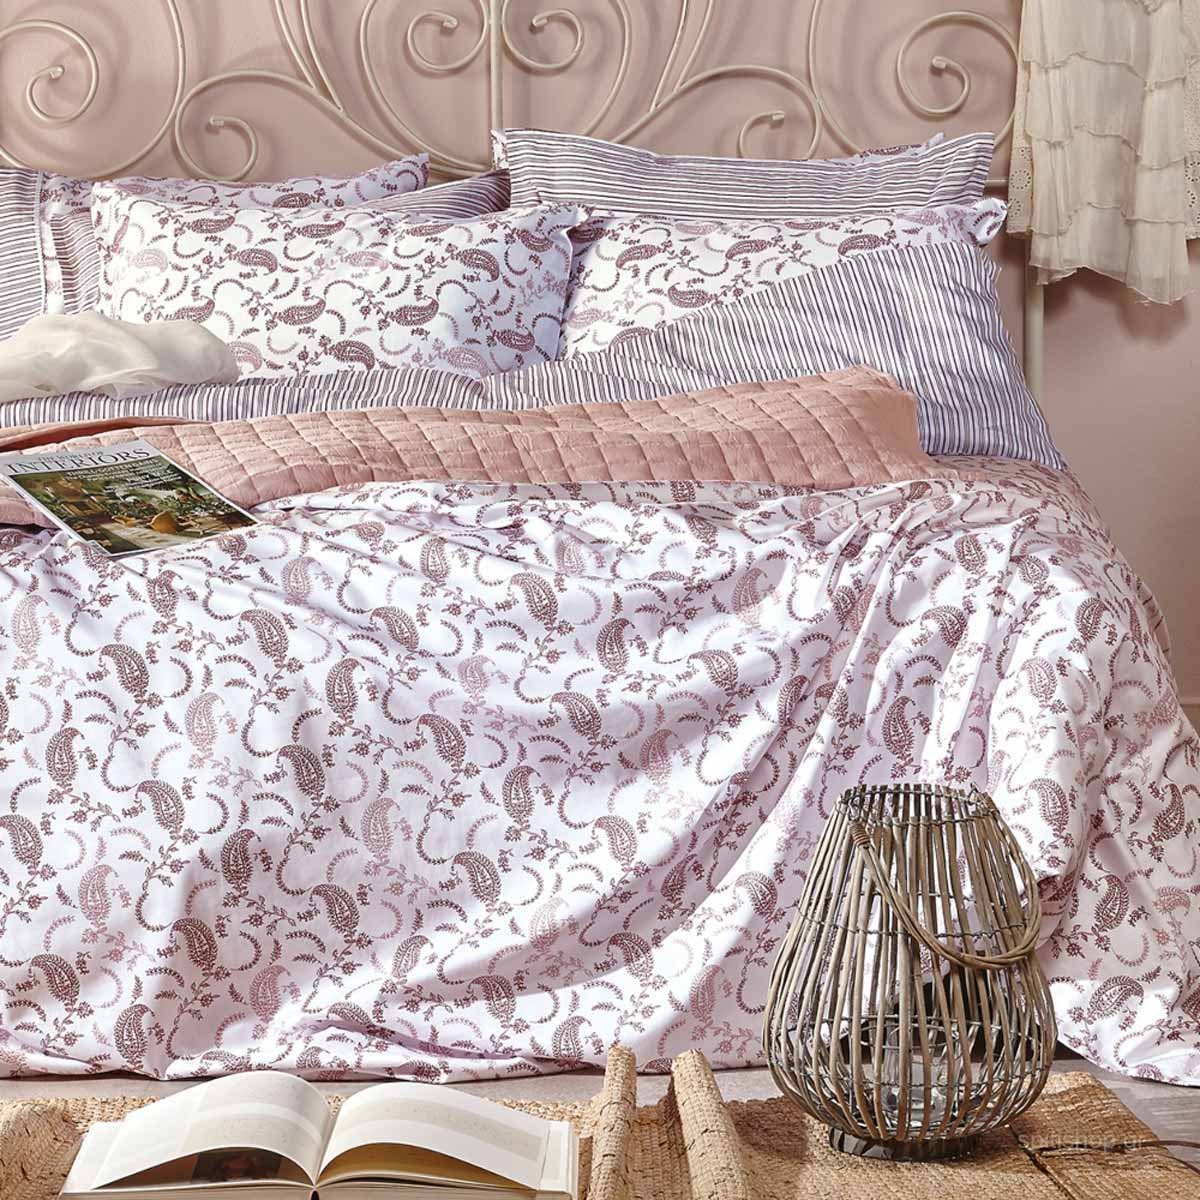 Σεντόνια King Size (Σετ) Kentia Stylish Leona 05